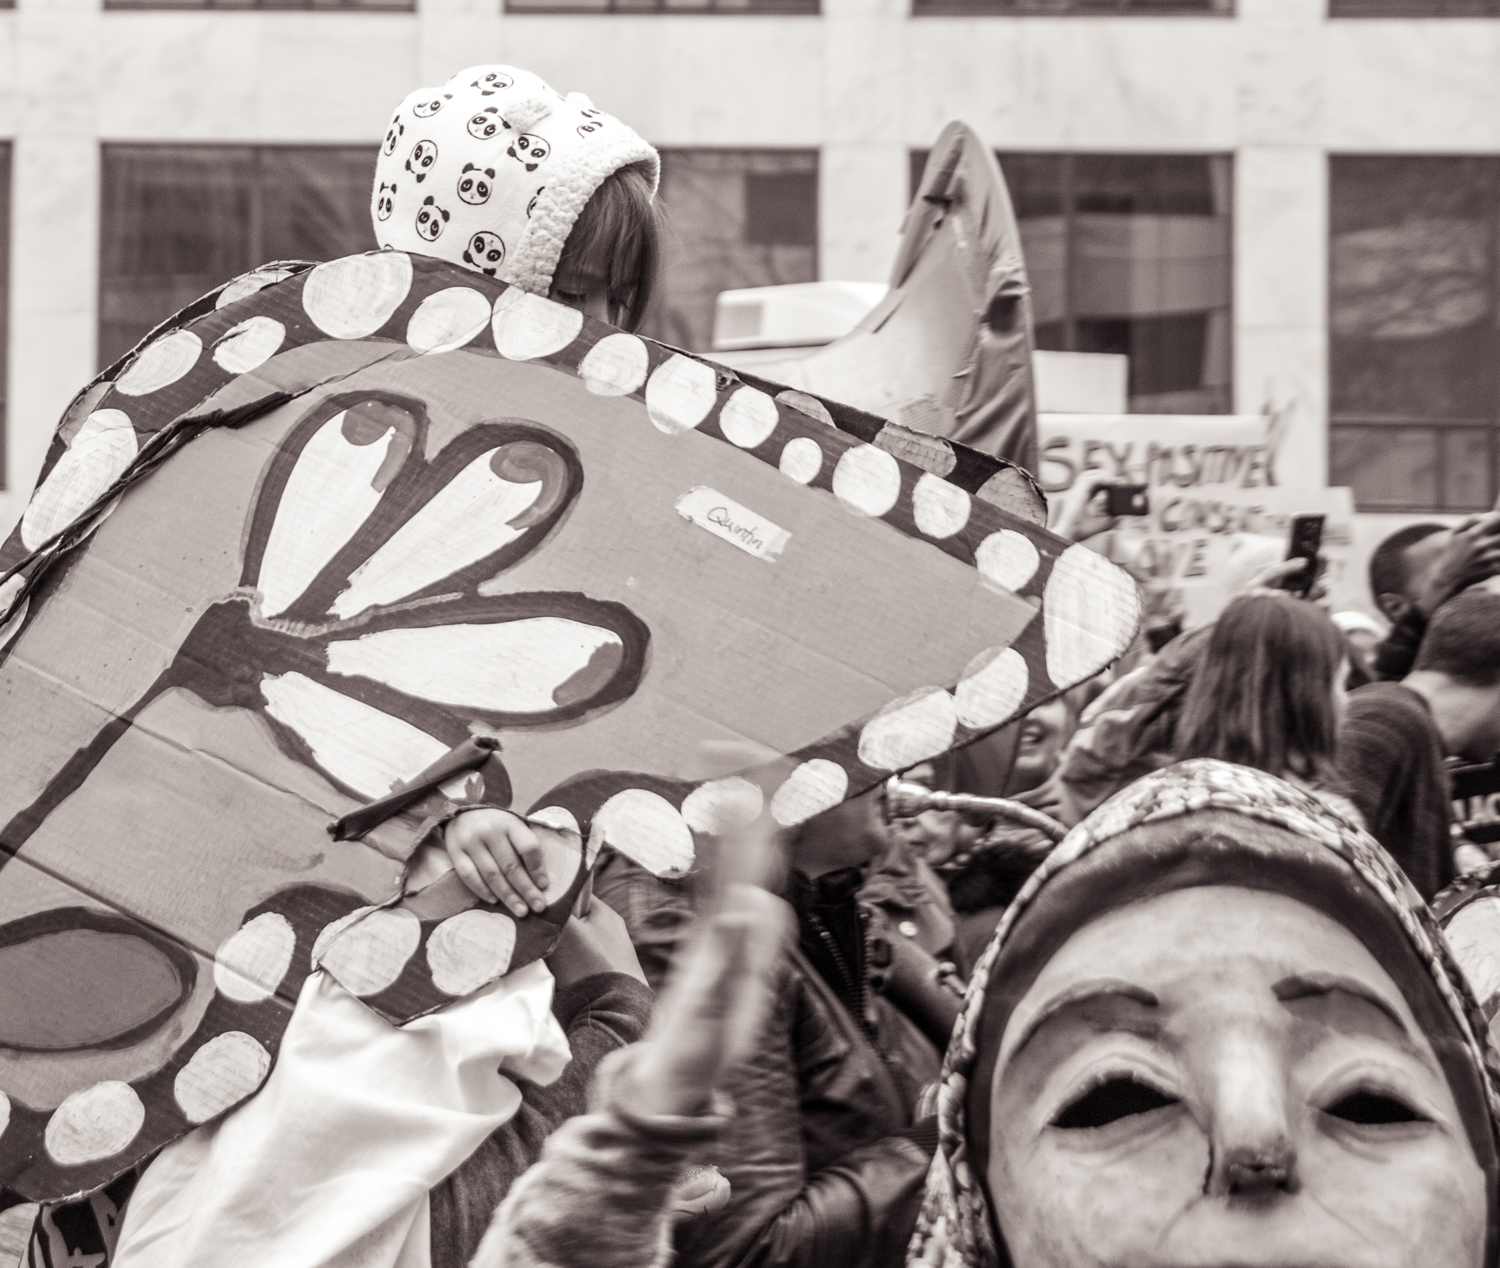 Womens-march-on-washington-2017-Brian-K-Powers-Photography-0138.jpg